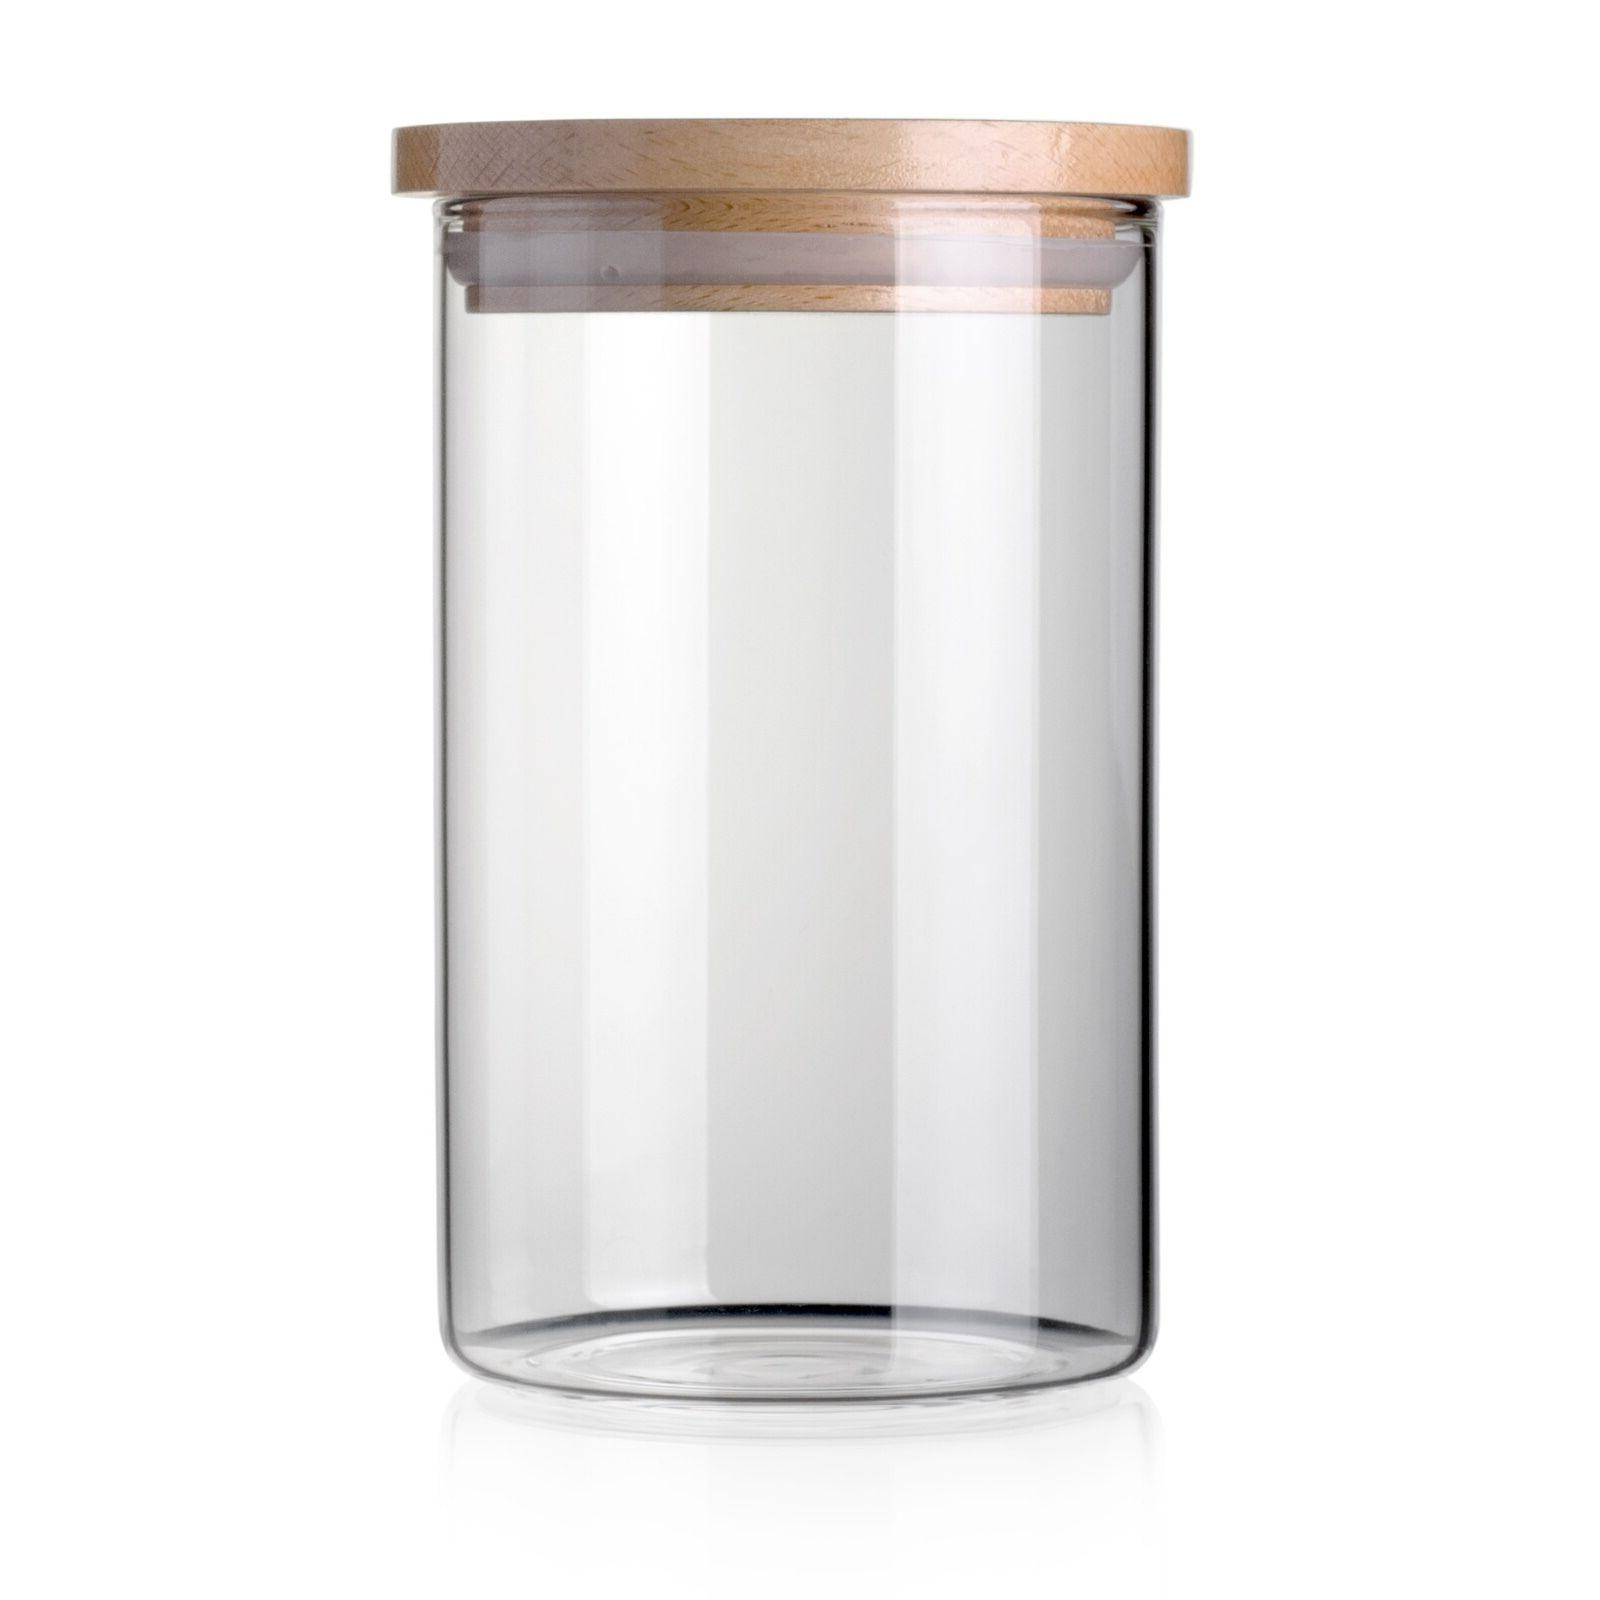 STACK UP Safe Clear Borosilicate Glass Jar with Wooden Lid -